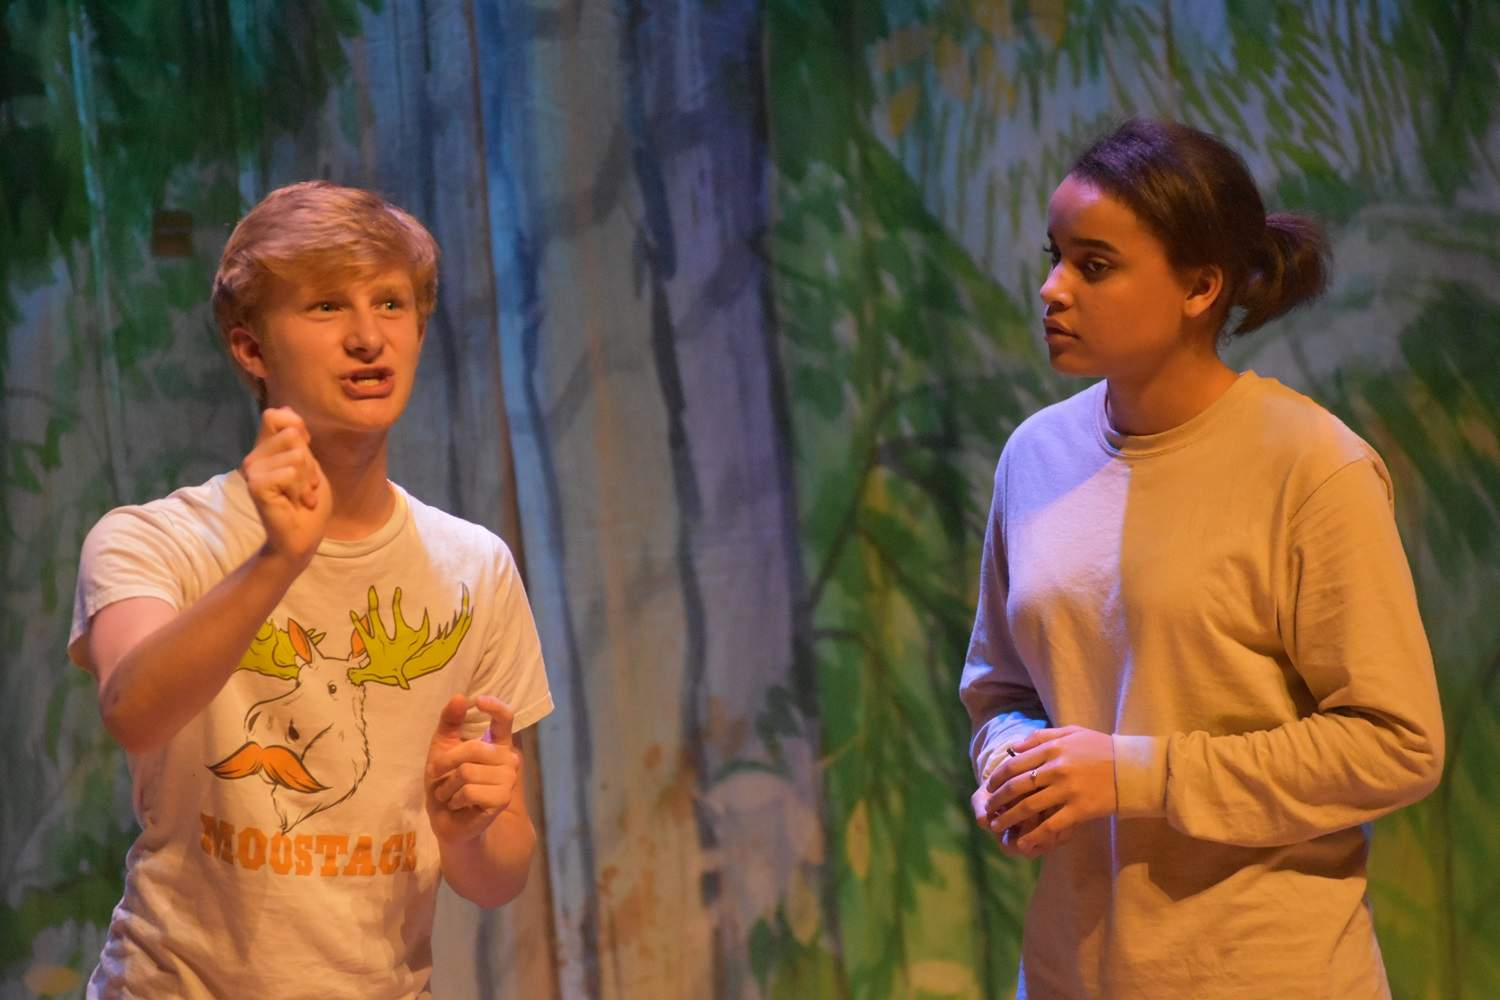 Rumpelstiltskin, left, played by Kale Rister, hatches a plan to trick the Miller's Daughter, played by Kyllah Glass, during practice for Carrier Mills-Stonefort High School's production of 'Rumpelstiltskin.'